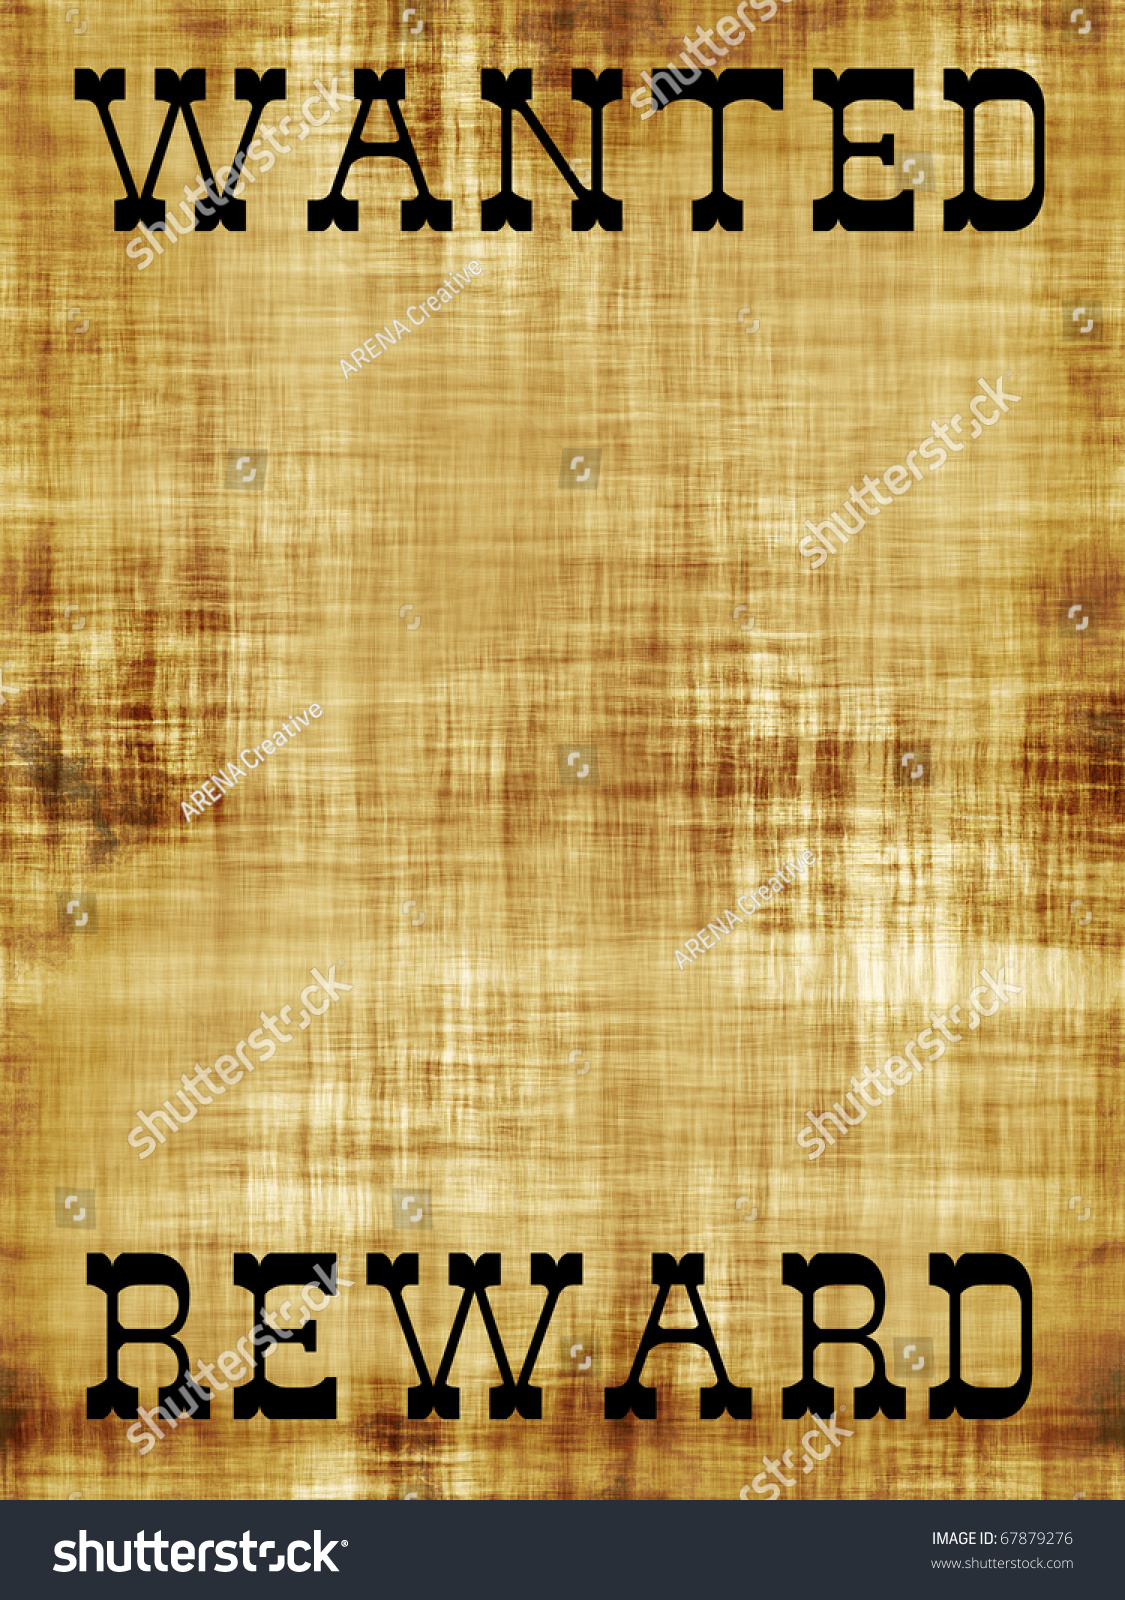 reward poster template – Missing Persons Poster Template